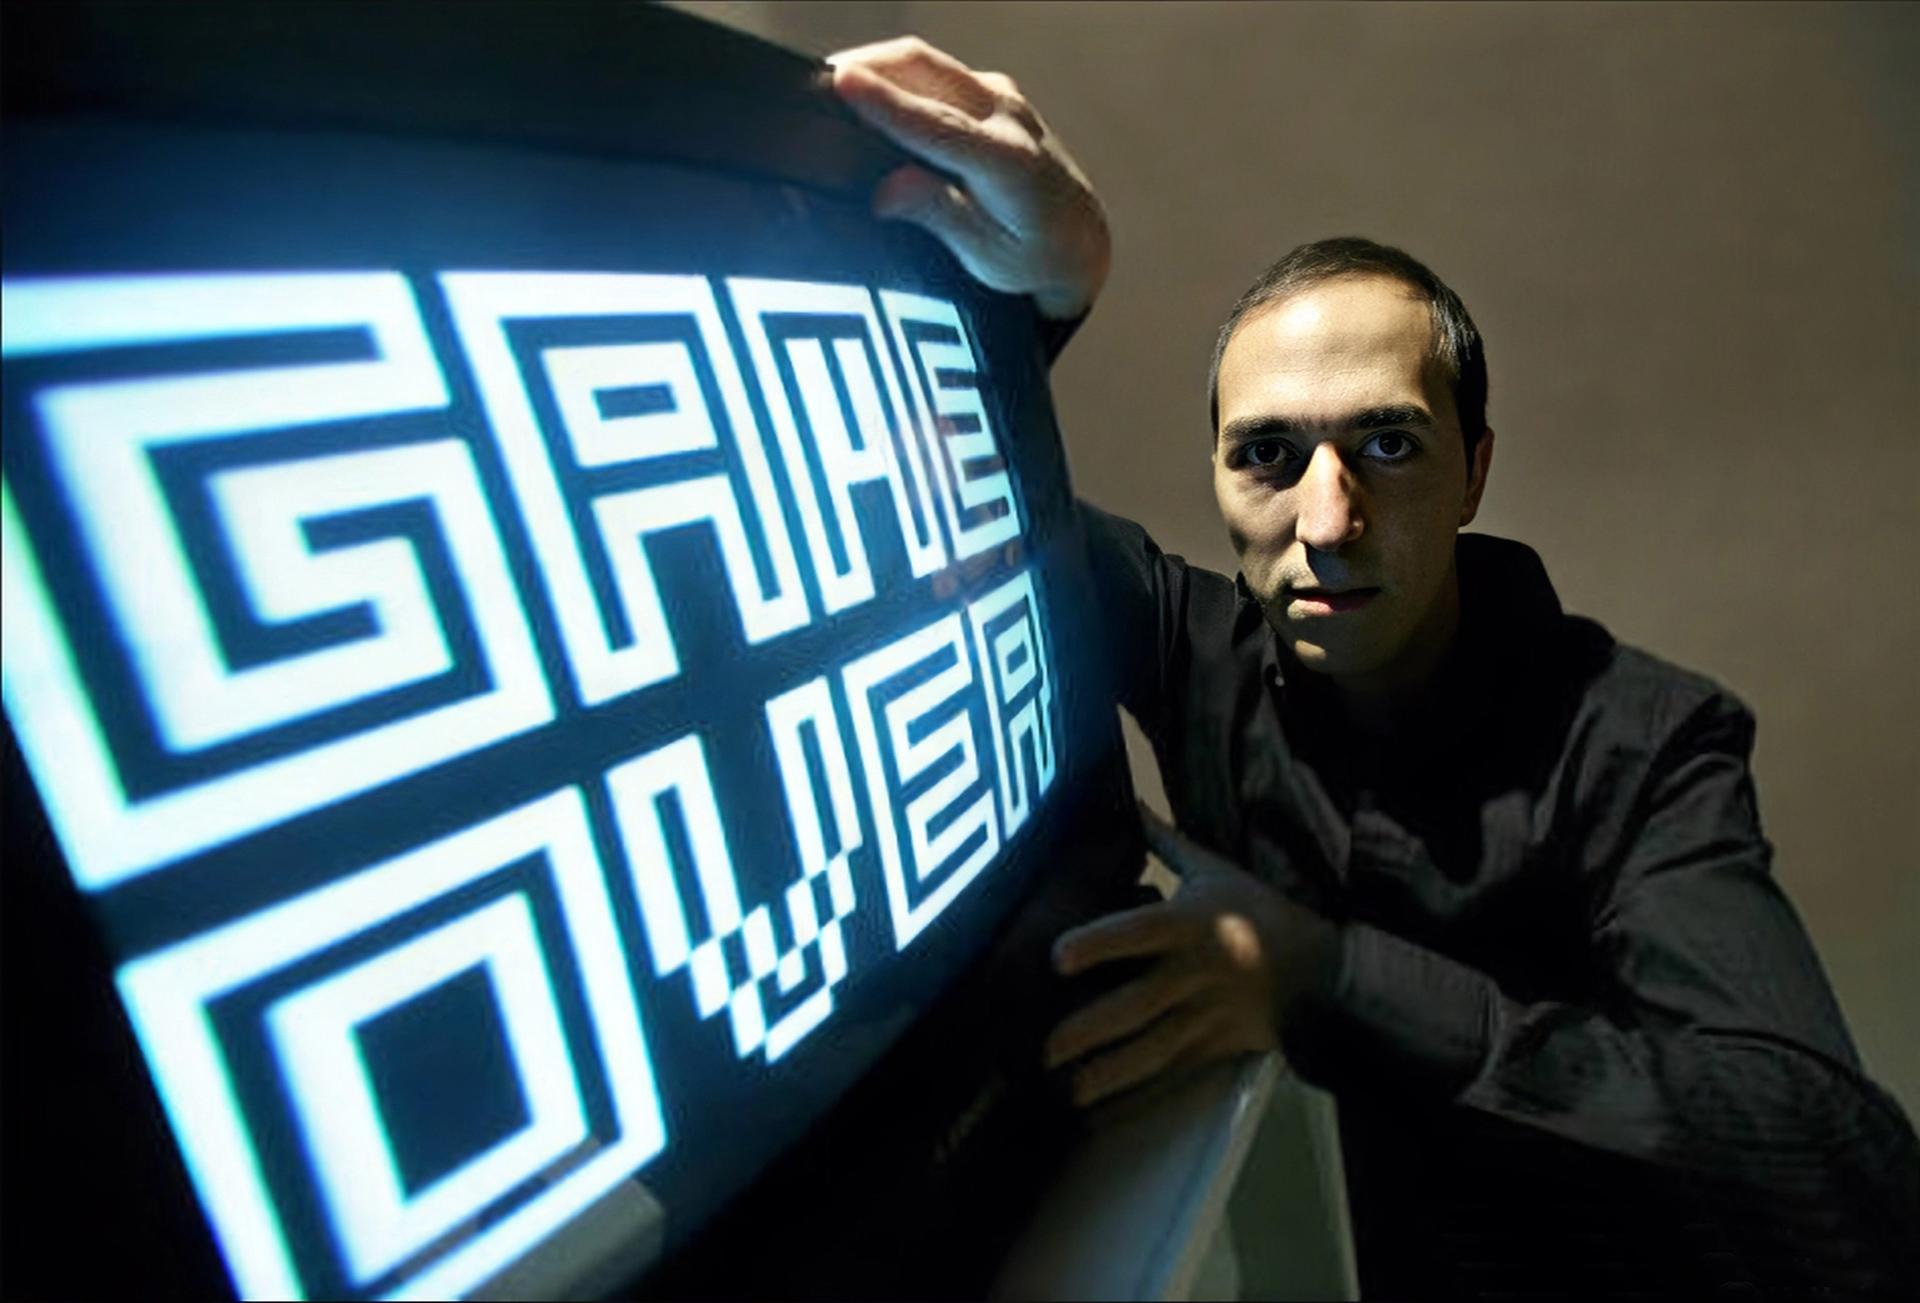 """""""I was truly passionate about the Atari. It had a quite strange and unique effect on my ability to relate to machines, and technology,"""" the artist Yucef Merhi says"""